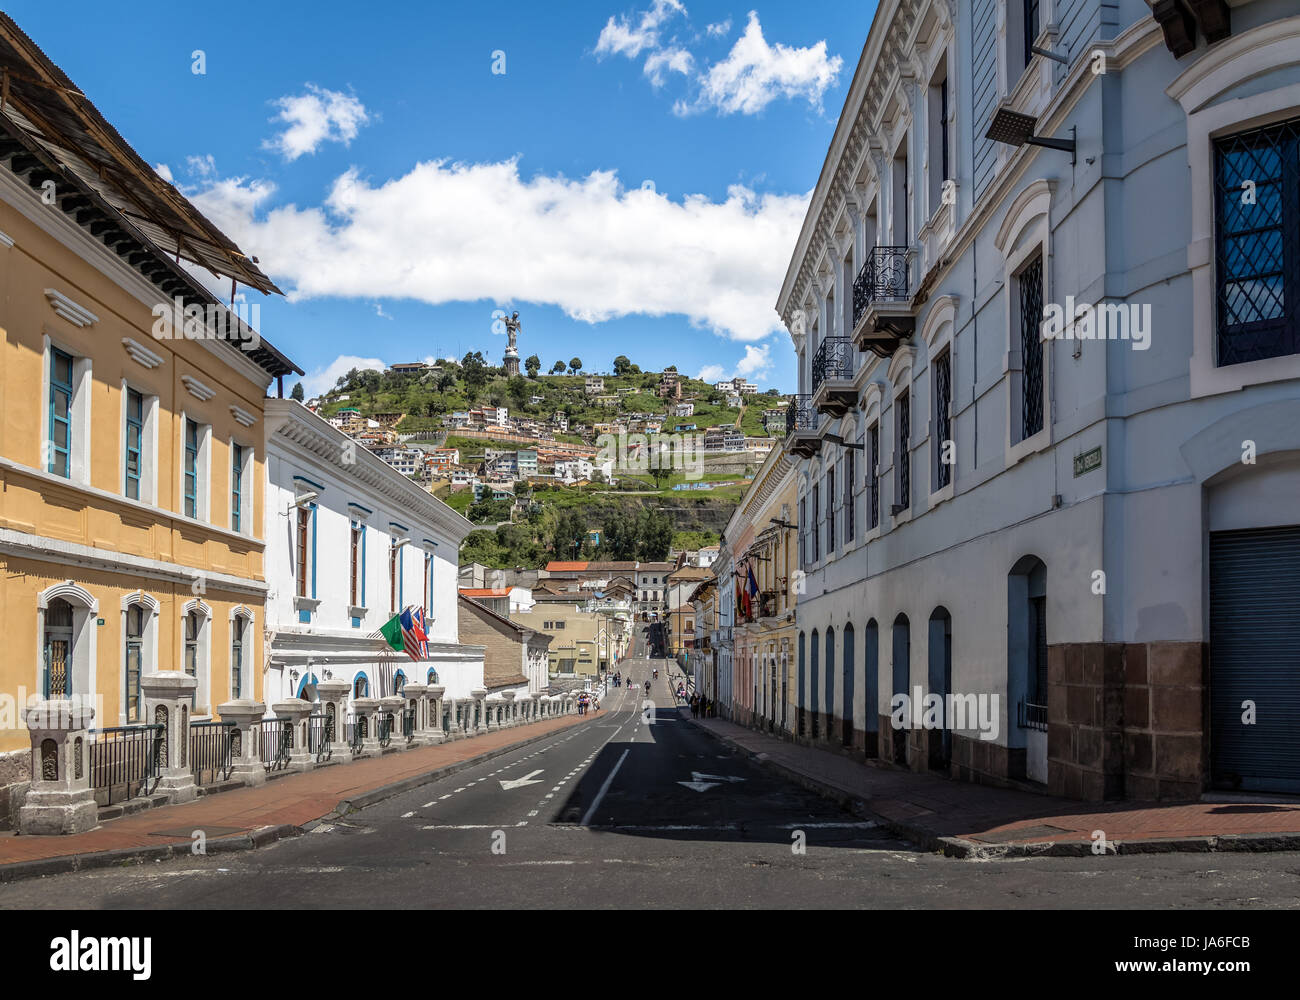 Street of Quito and Monument to the Virgin Mary on the top of El Panecillo Hill - Quito, Ecuador - Stock Image